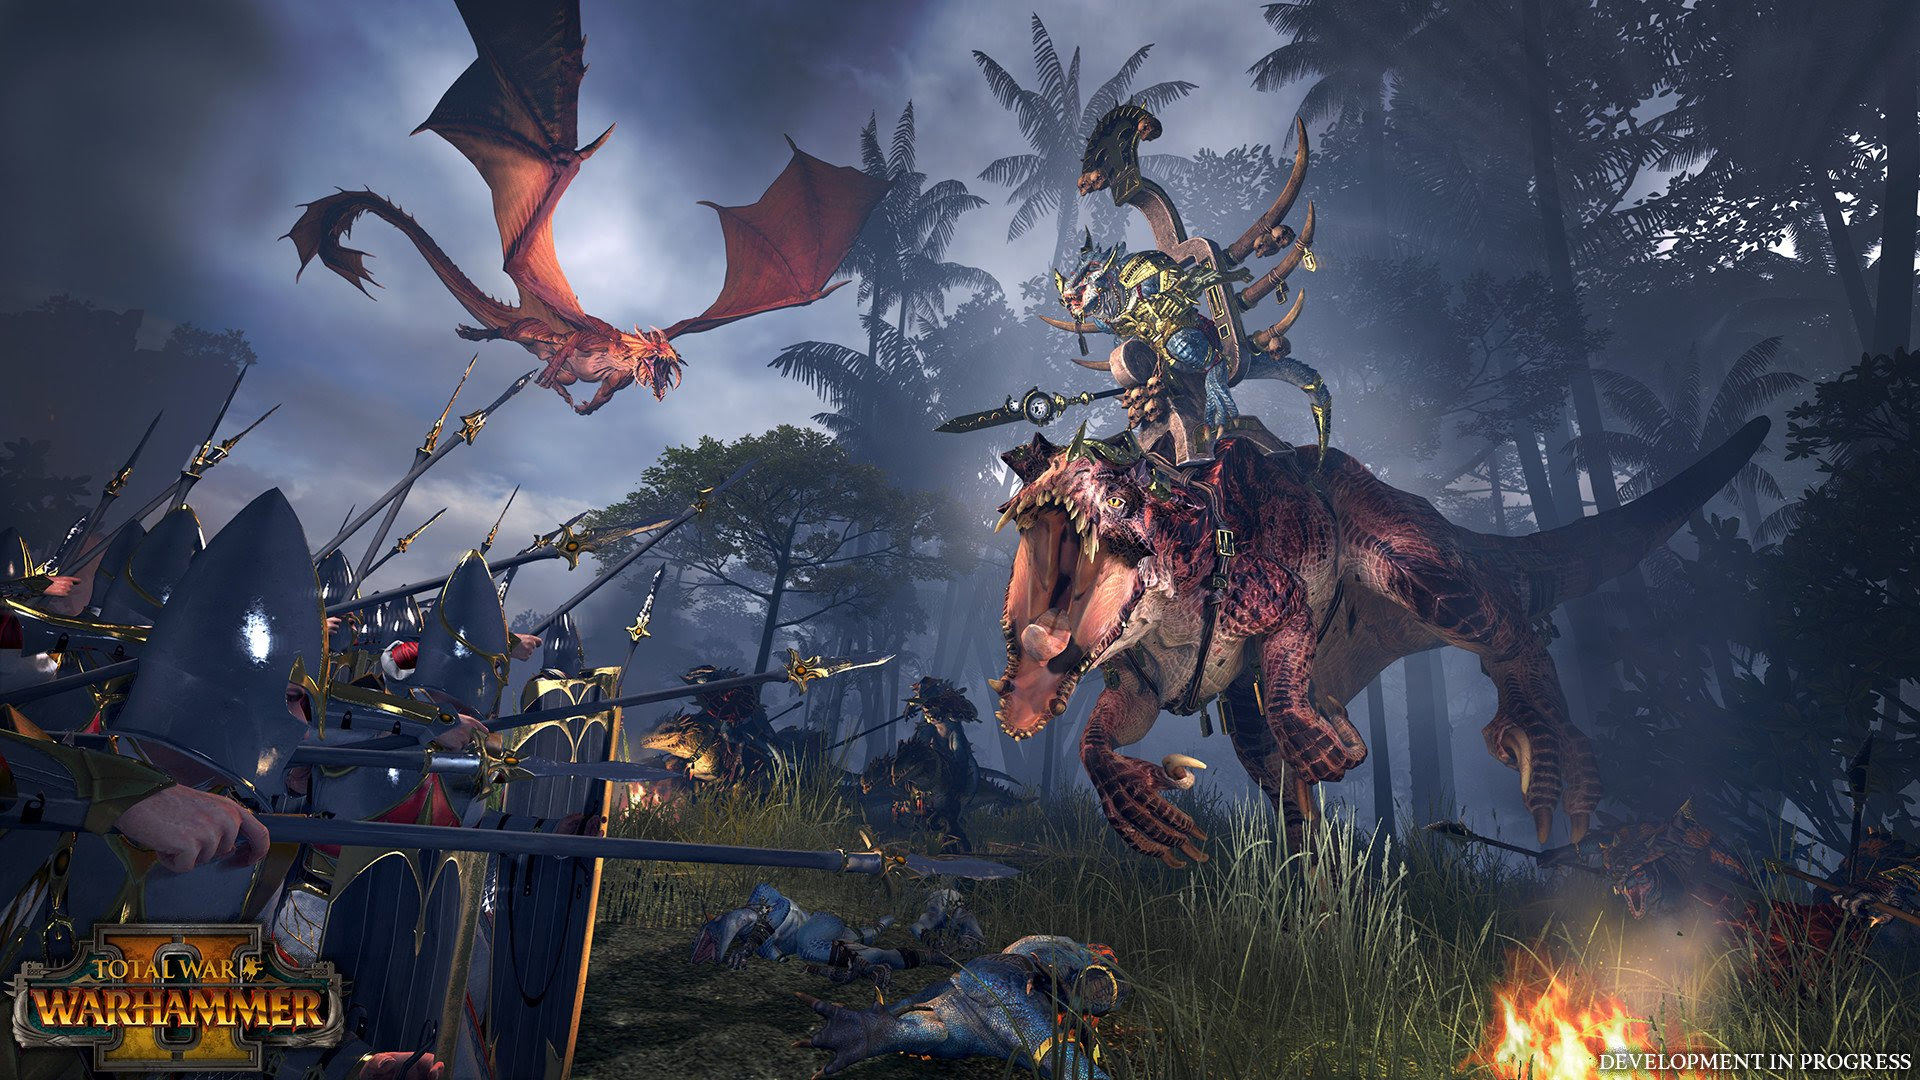 It's still crazy to think that Total War: Warhammer II is nearly here screenshot